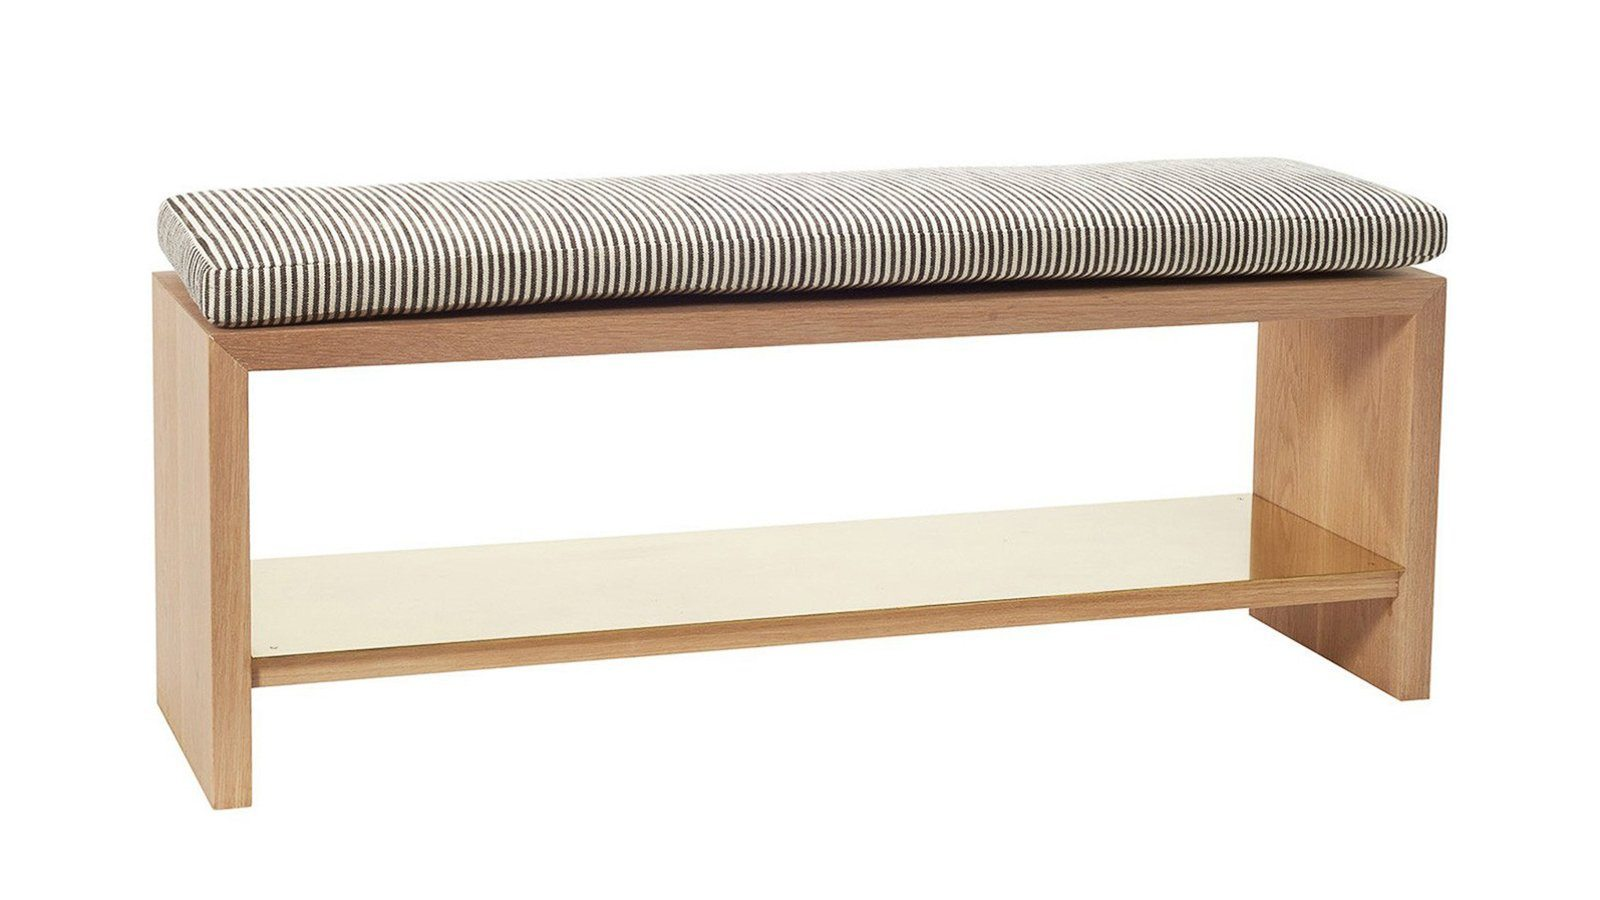 ... Occasional Seating U003e Bench   Freddie Bench With Brass Shelf By Consort  ...